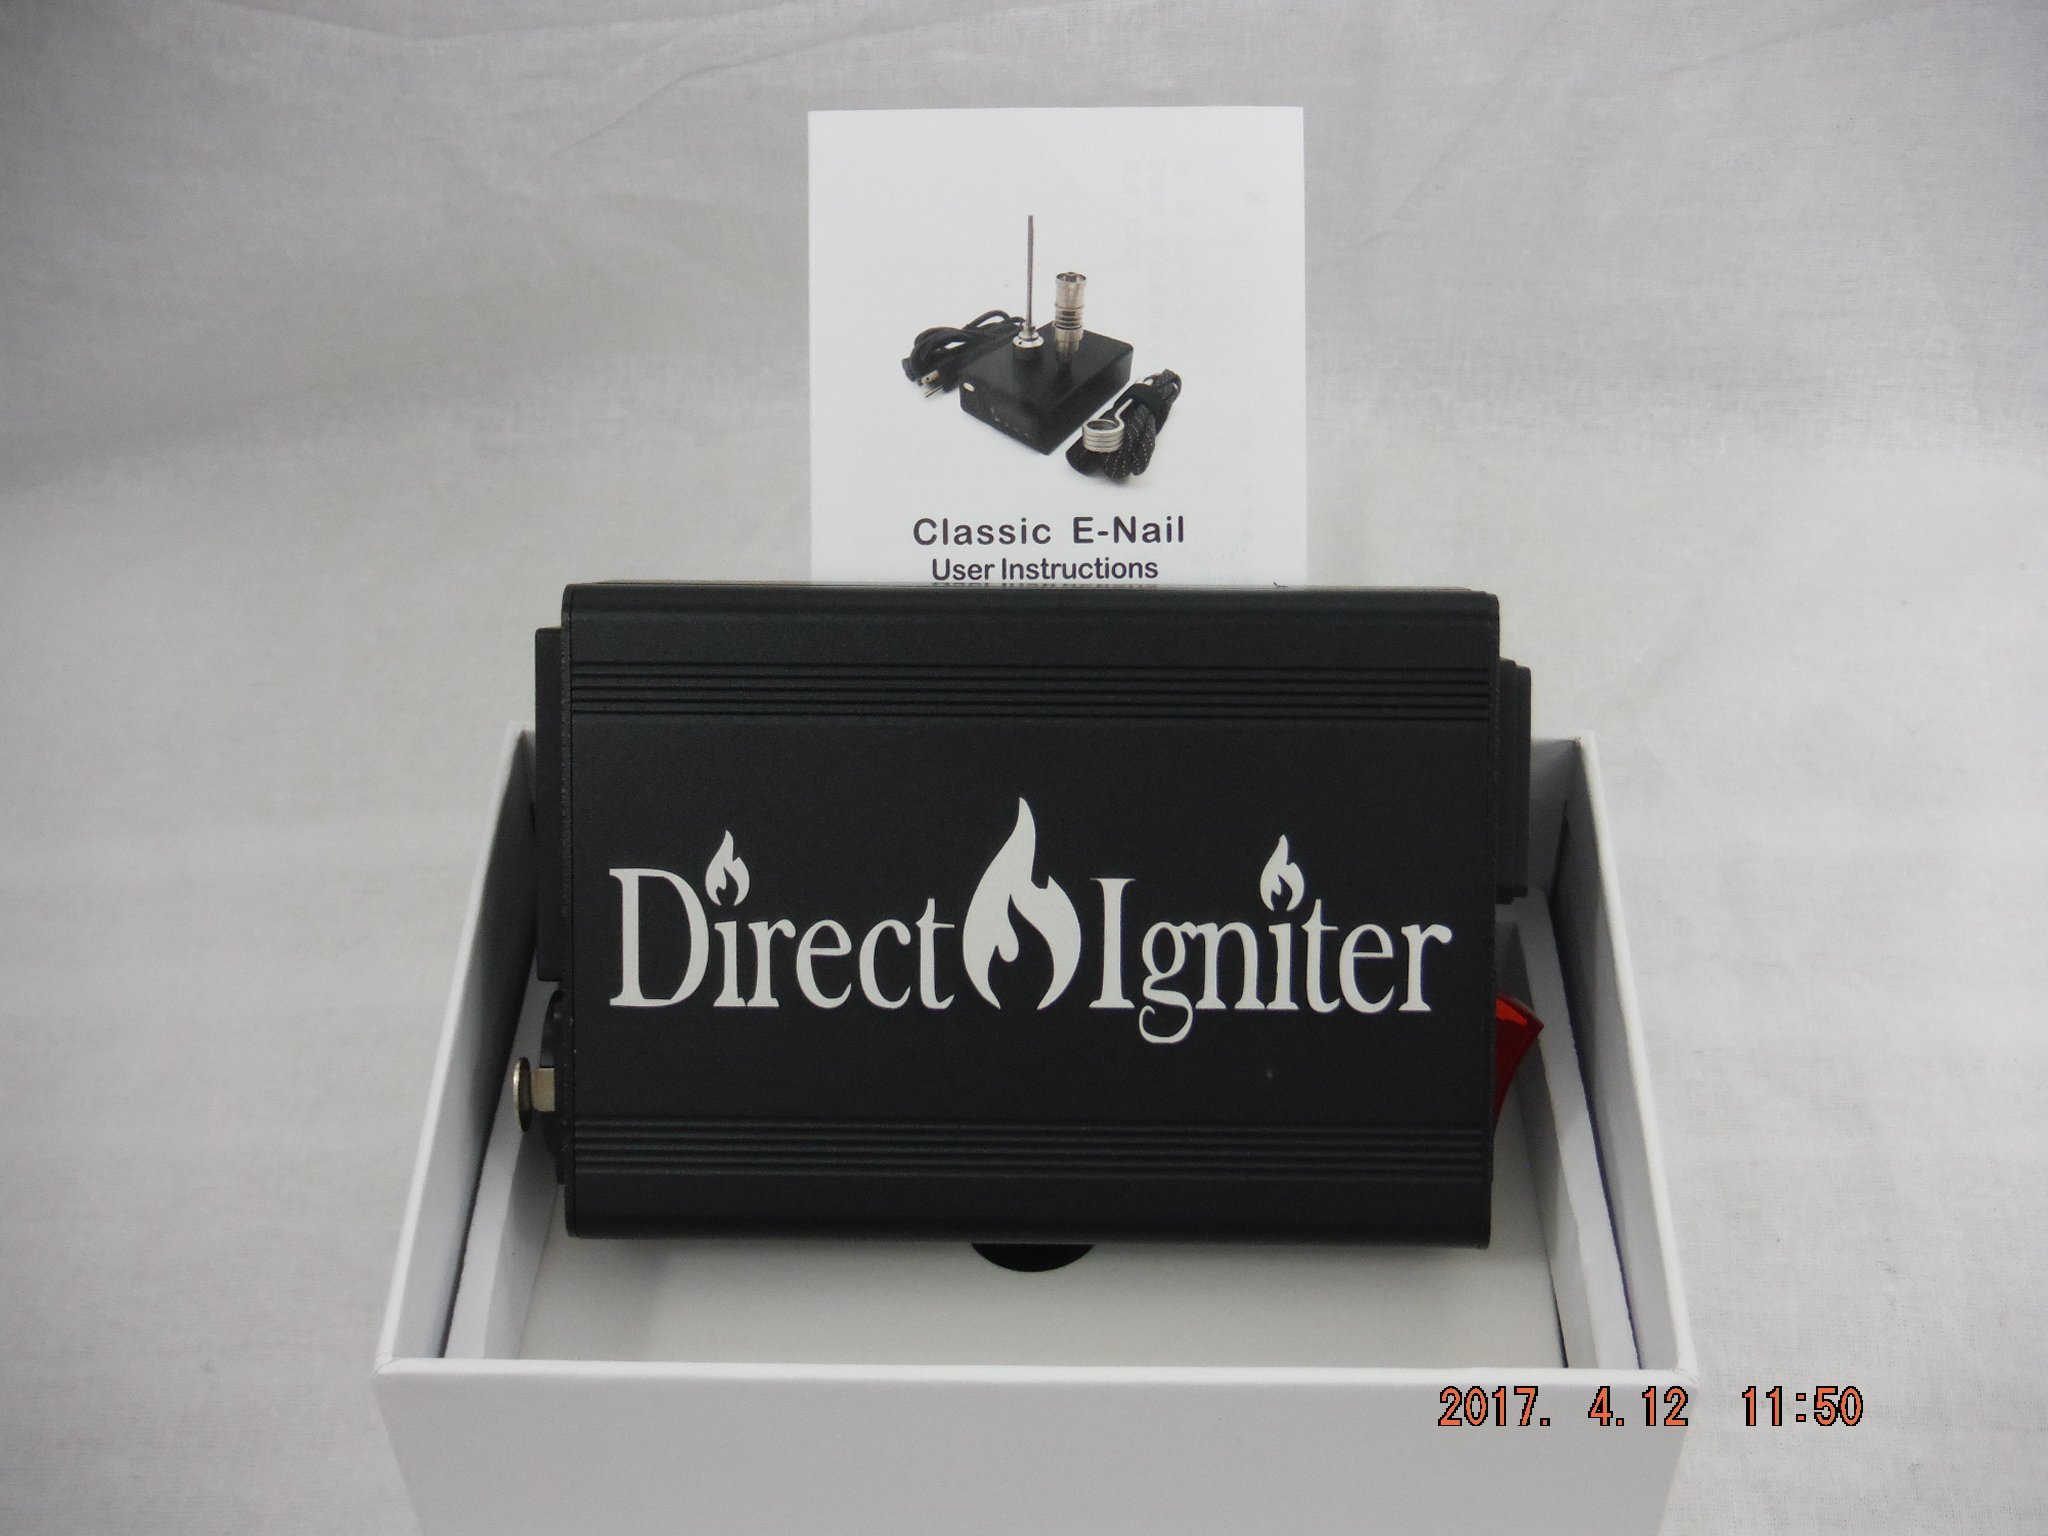 DIRECT IGNITER CLASSIC Aromatherapy Difuser WITH PID TEMPERATURE CONTROL PLUS ACCESSORIES by DIRECT IGNITER (Image #4)